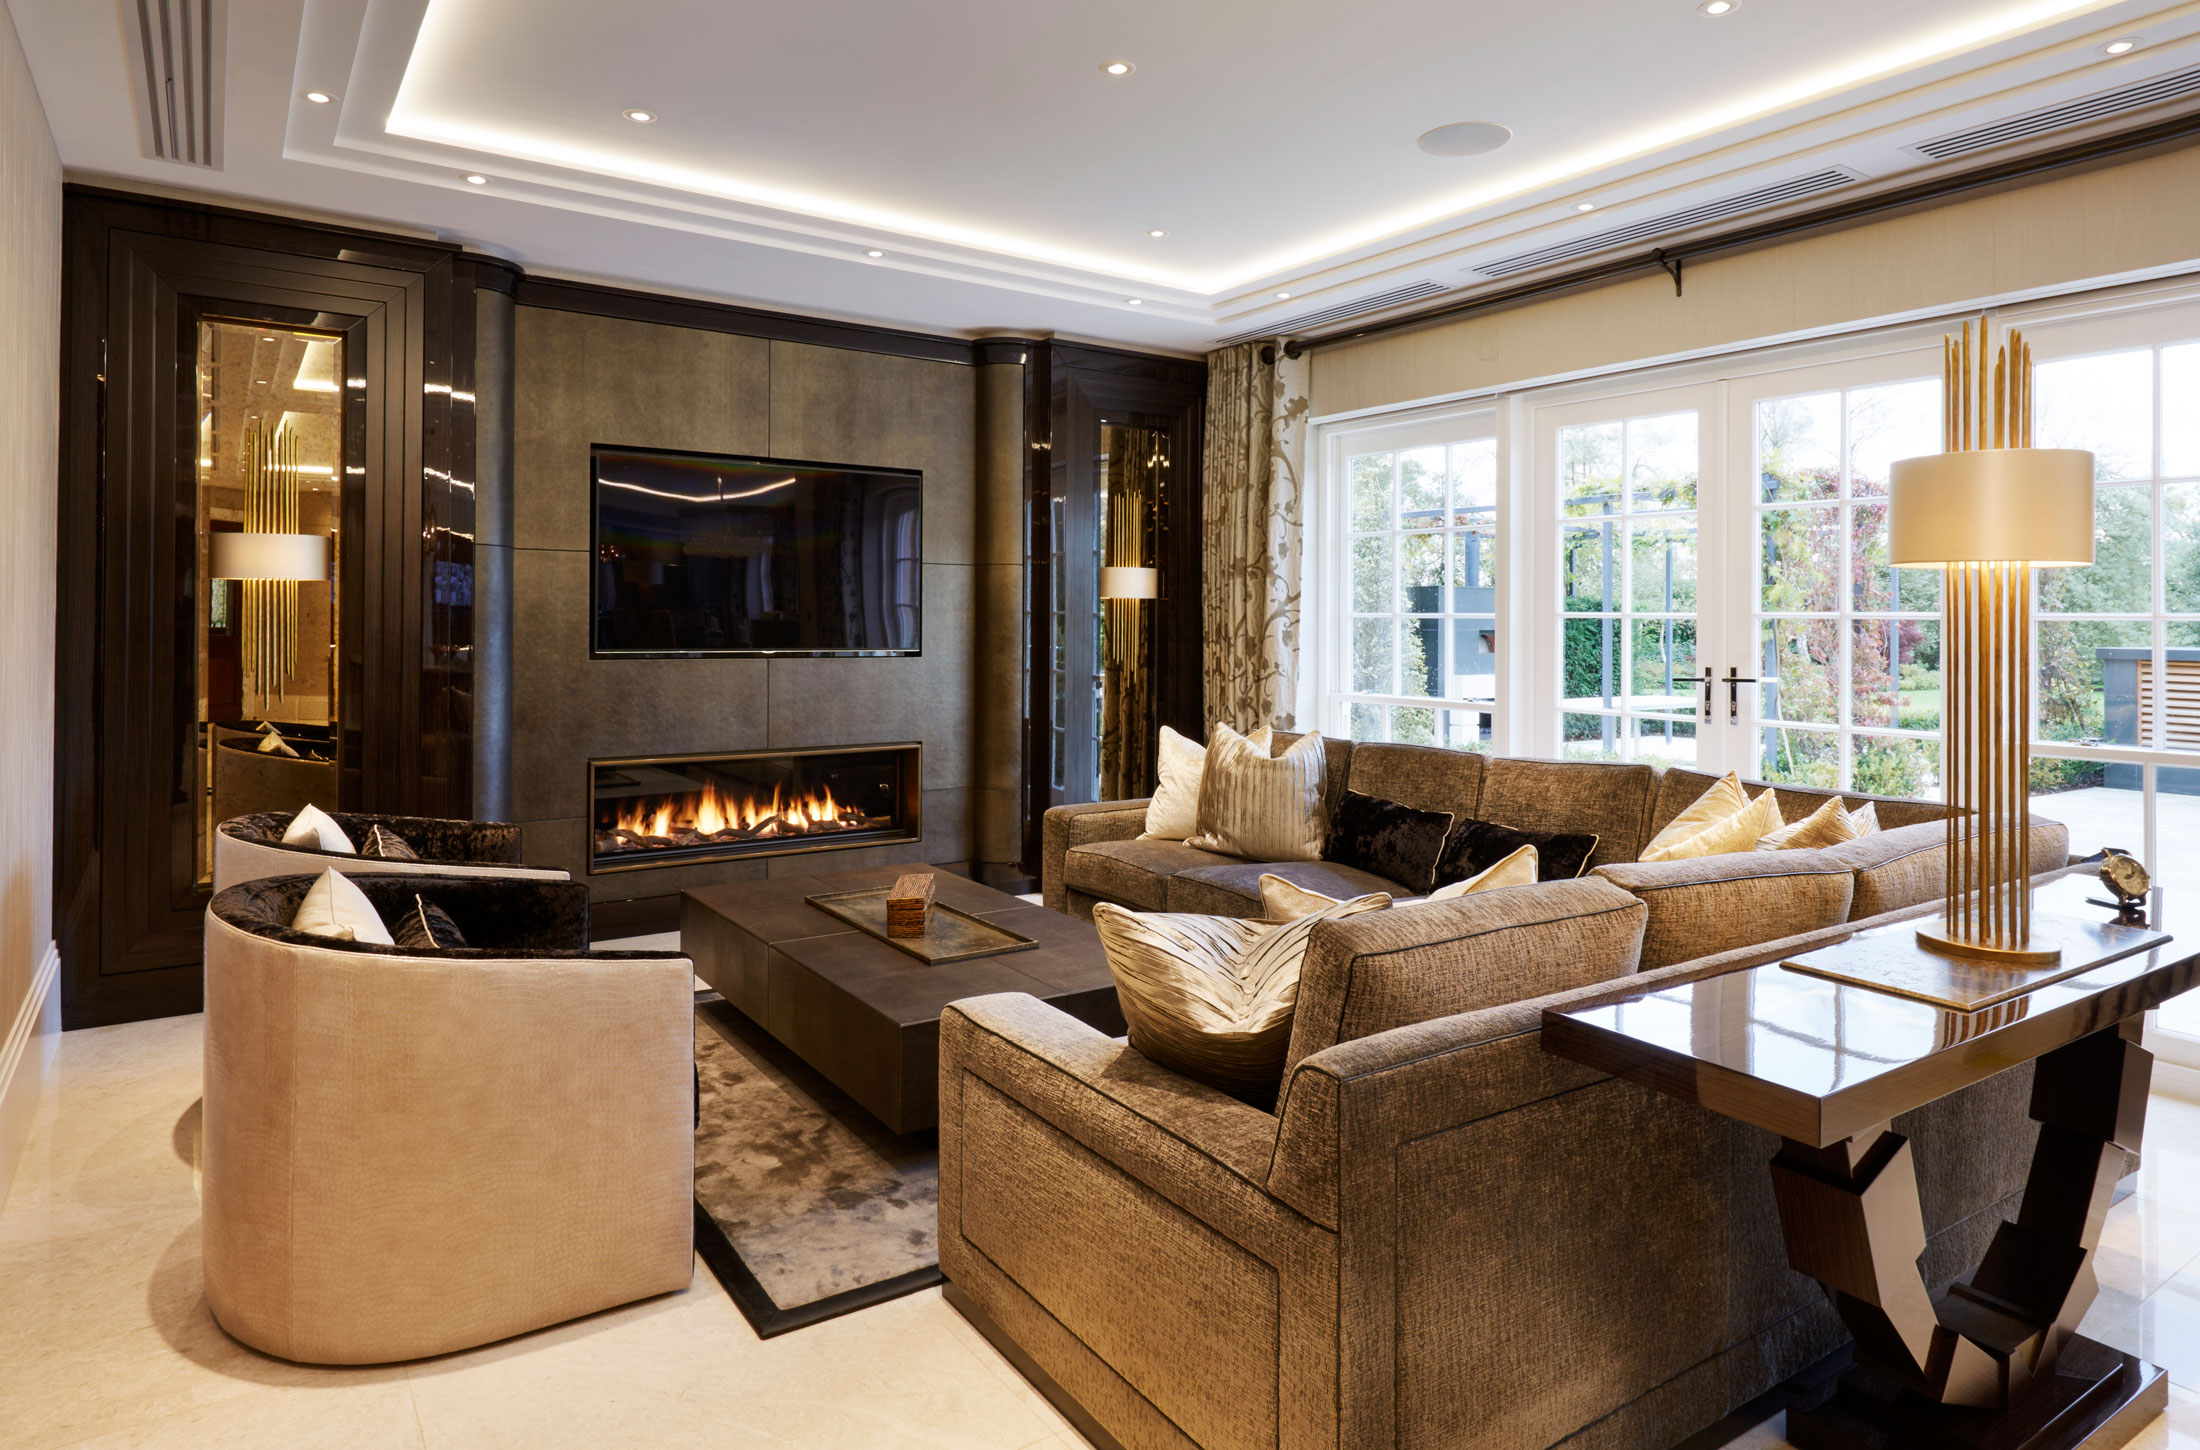 bespoke design interior london residence family room